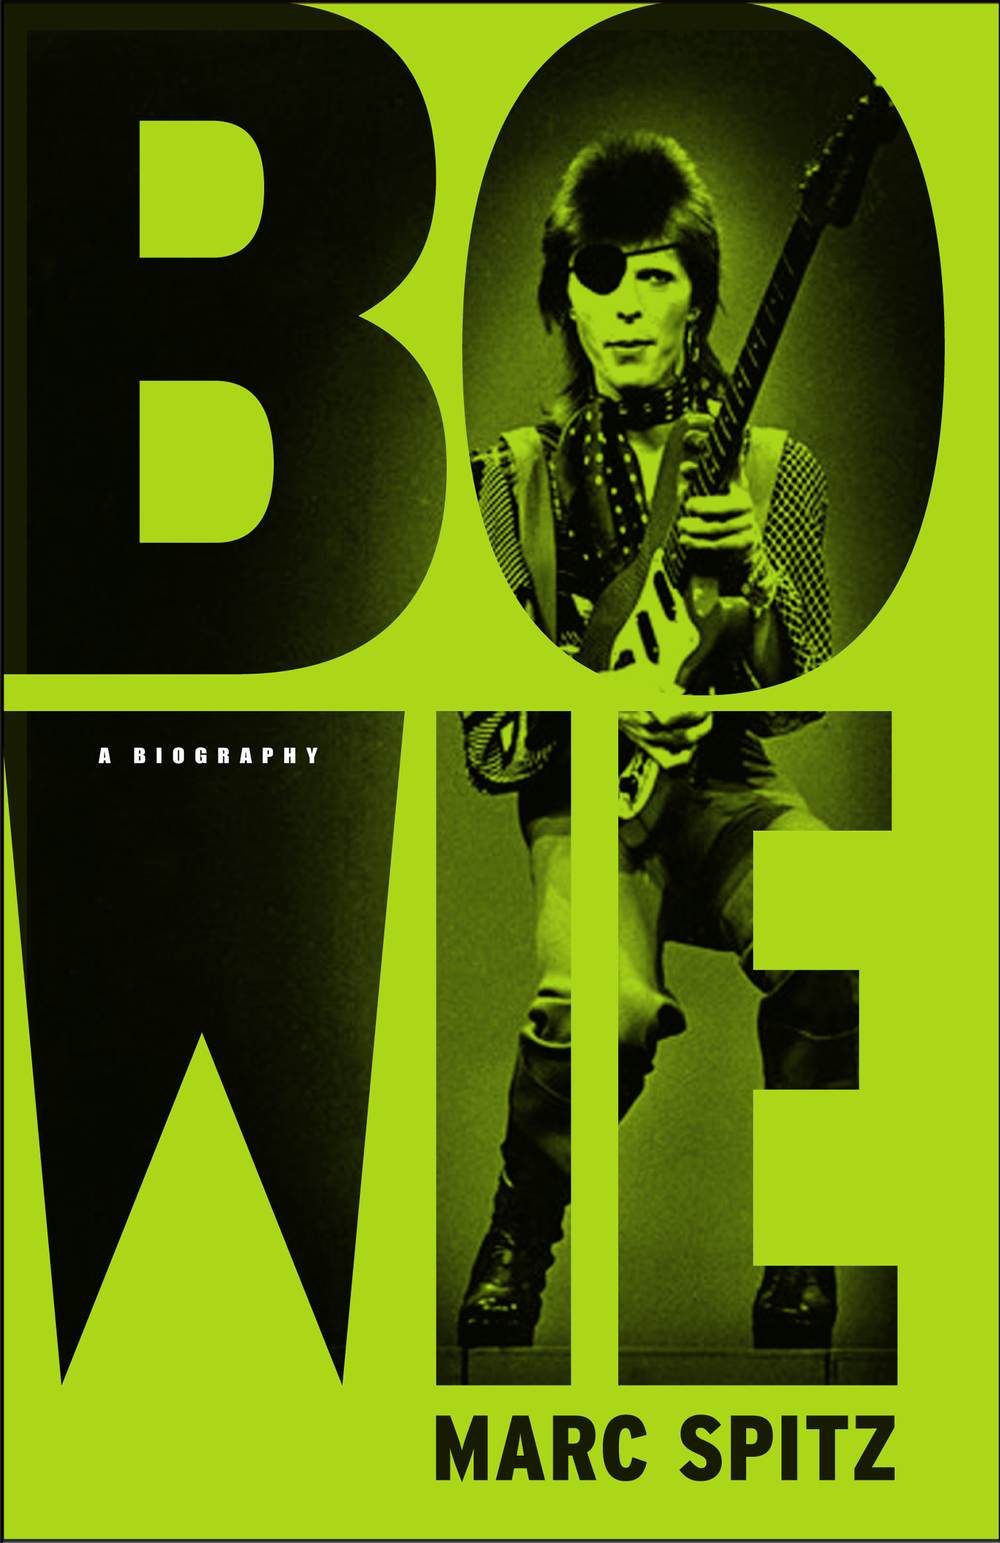 BOWIE-tpb-comp3-ss6.jpg